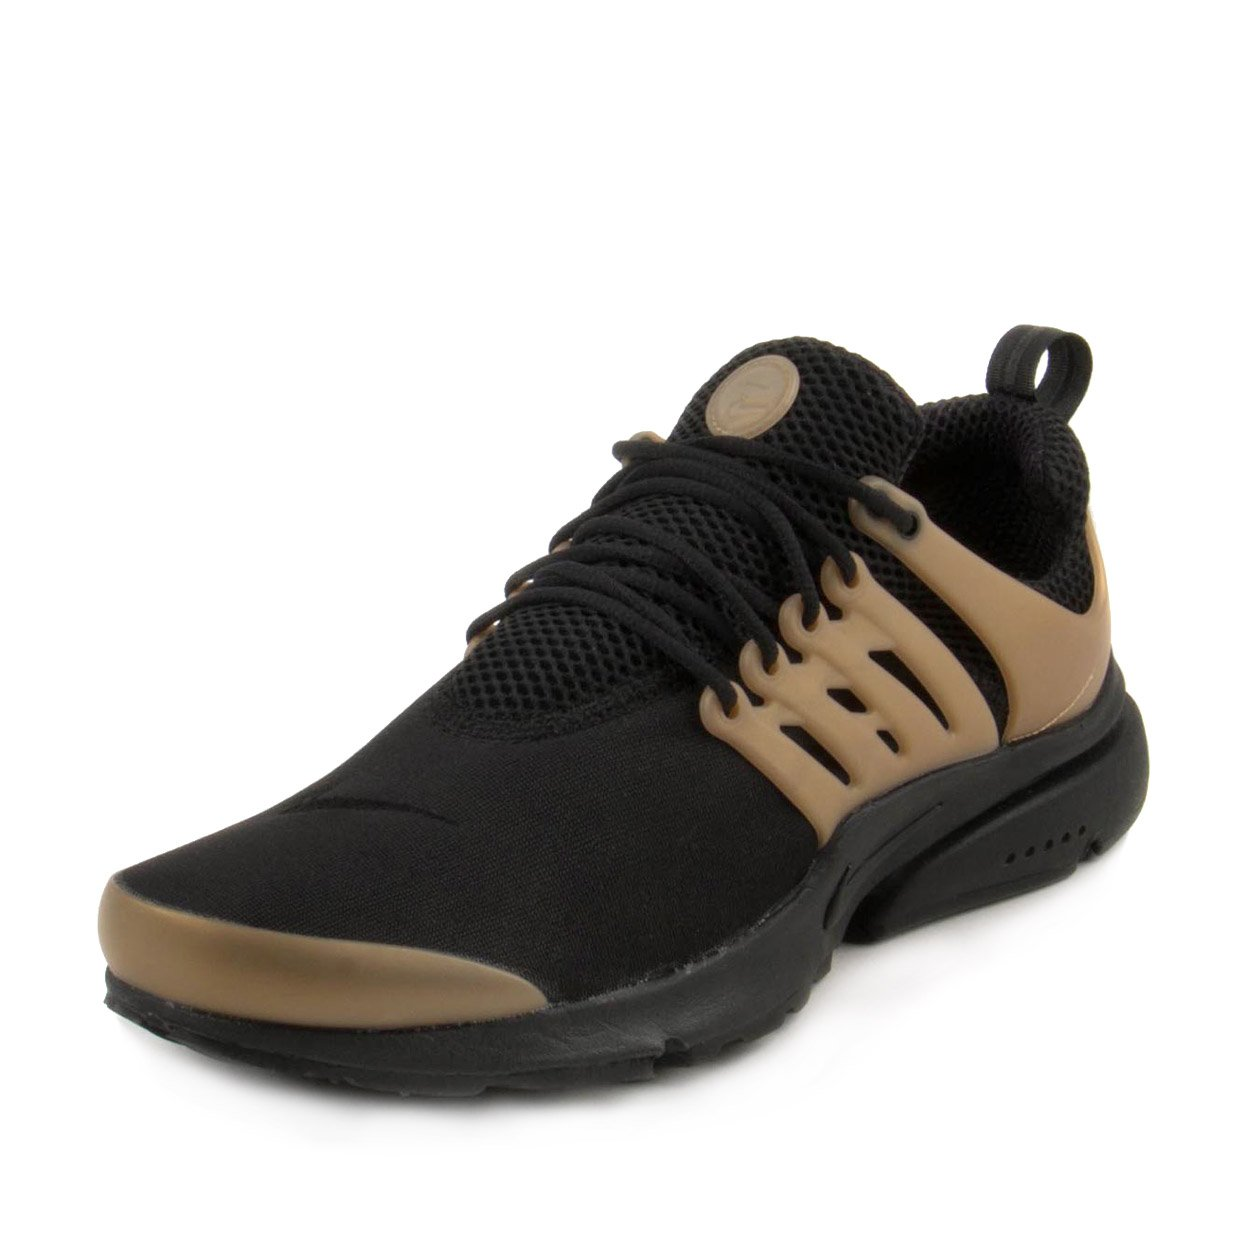 sports shoes 67469 853c5 Galleon - Nike Air Presto Essential Men Lifestyle Casual Sneakers New Black  Metallic Gold - 13